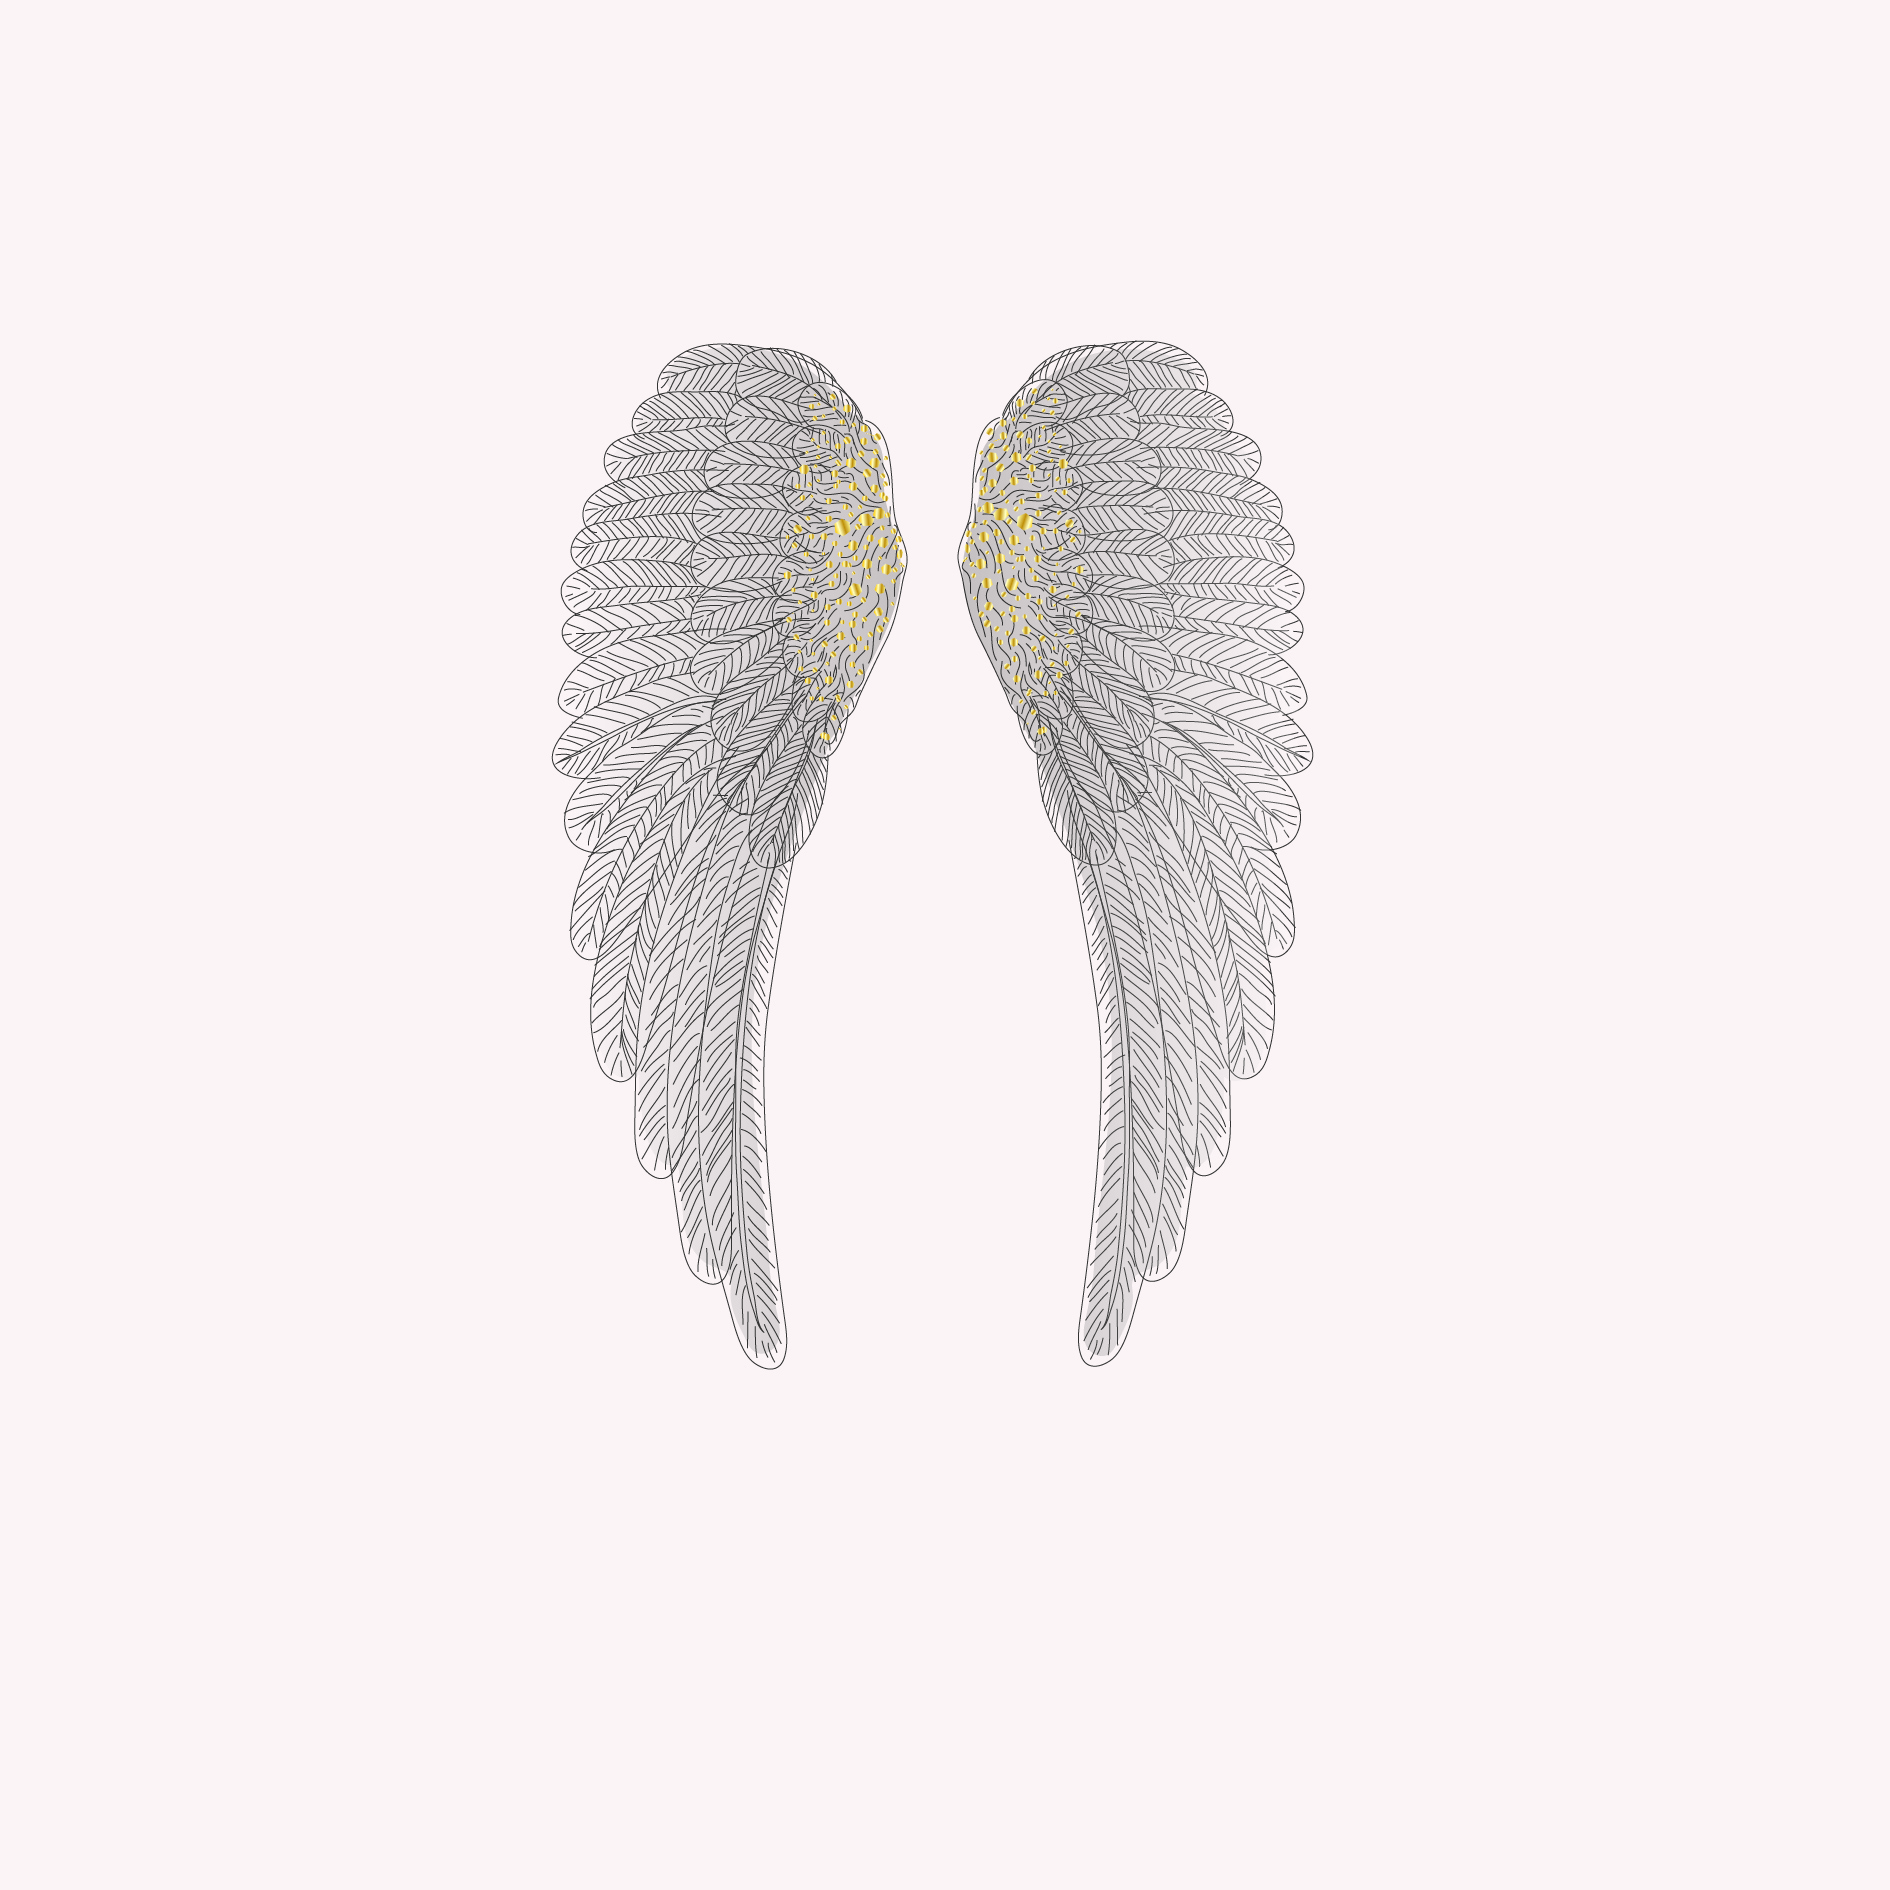 Box of 6 Angel Wing Cards